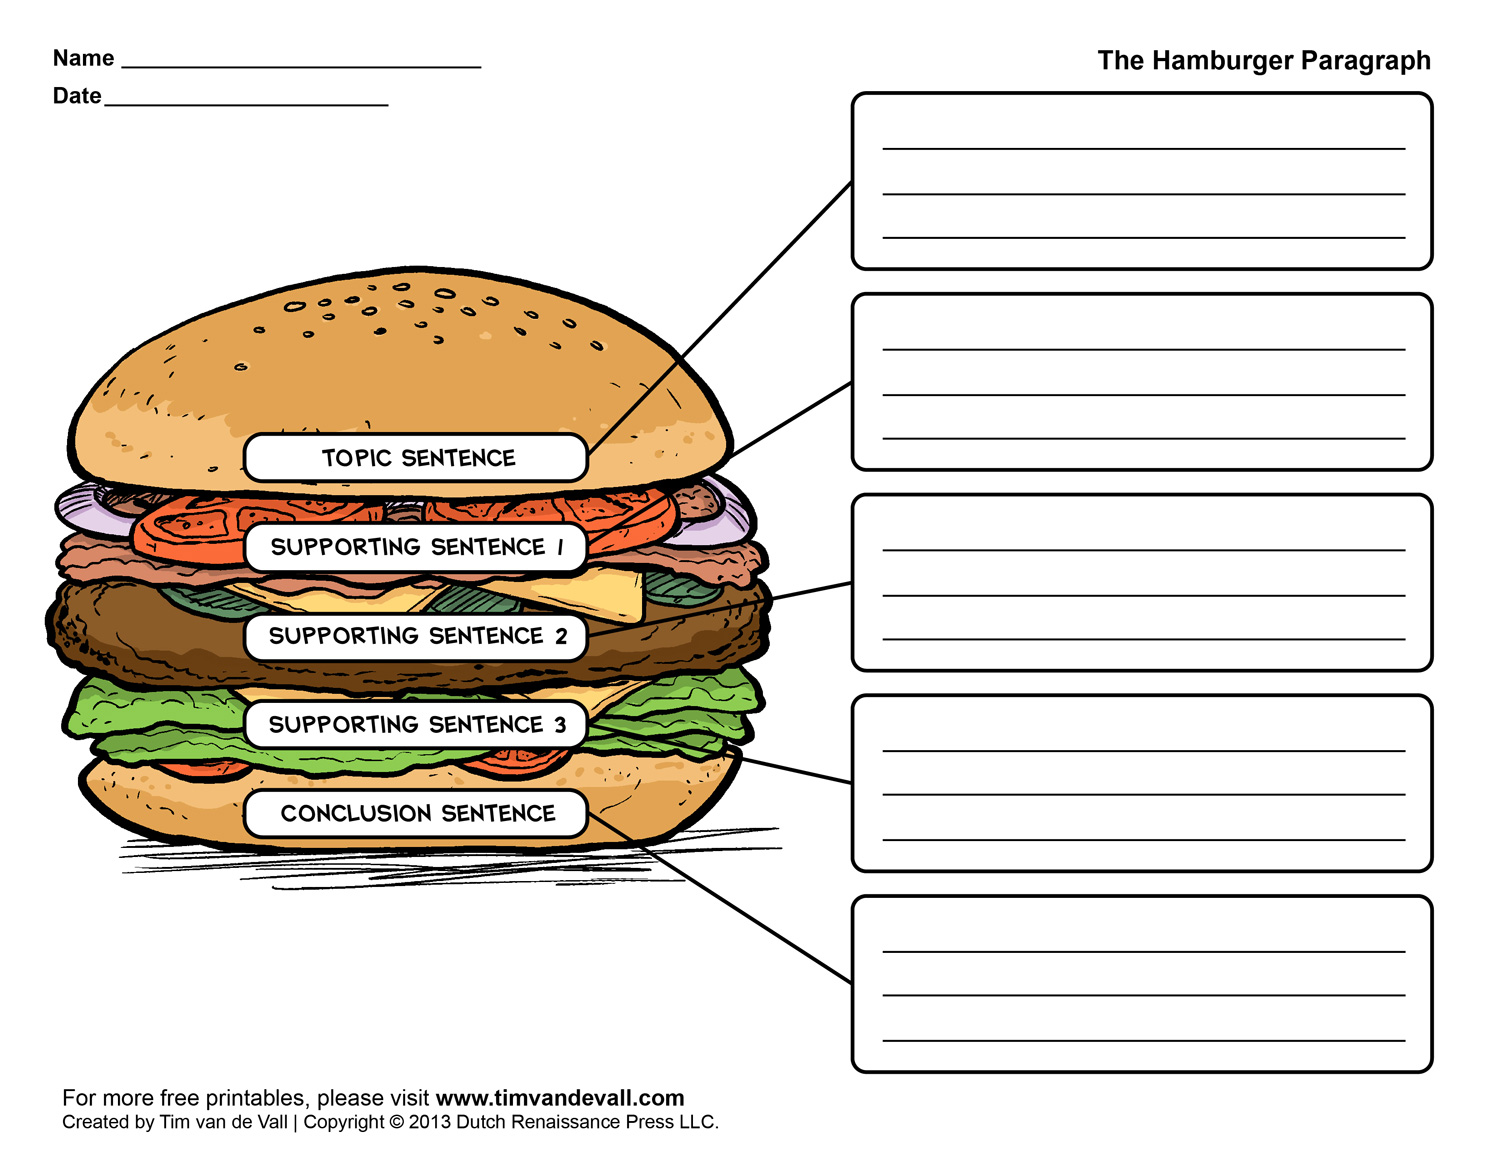 Worksheets Hamburger Paragraph Worksheet hamburger paragraph worksheet language arts printables free worksheet